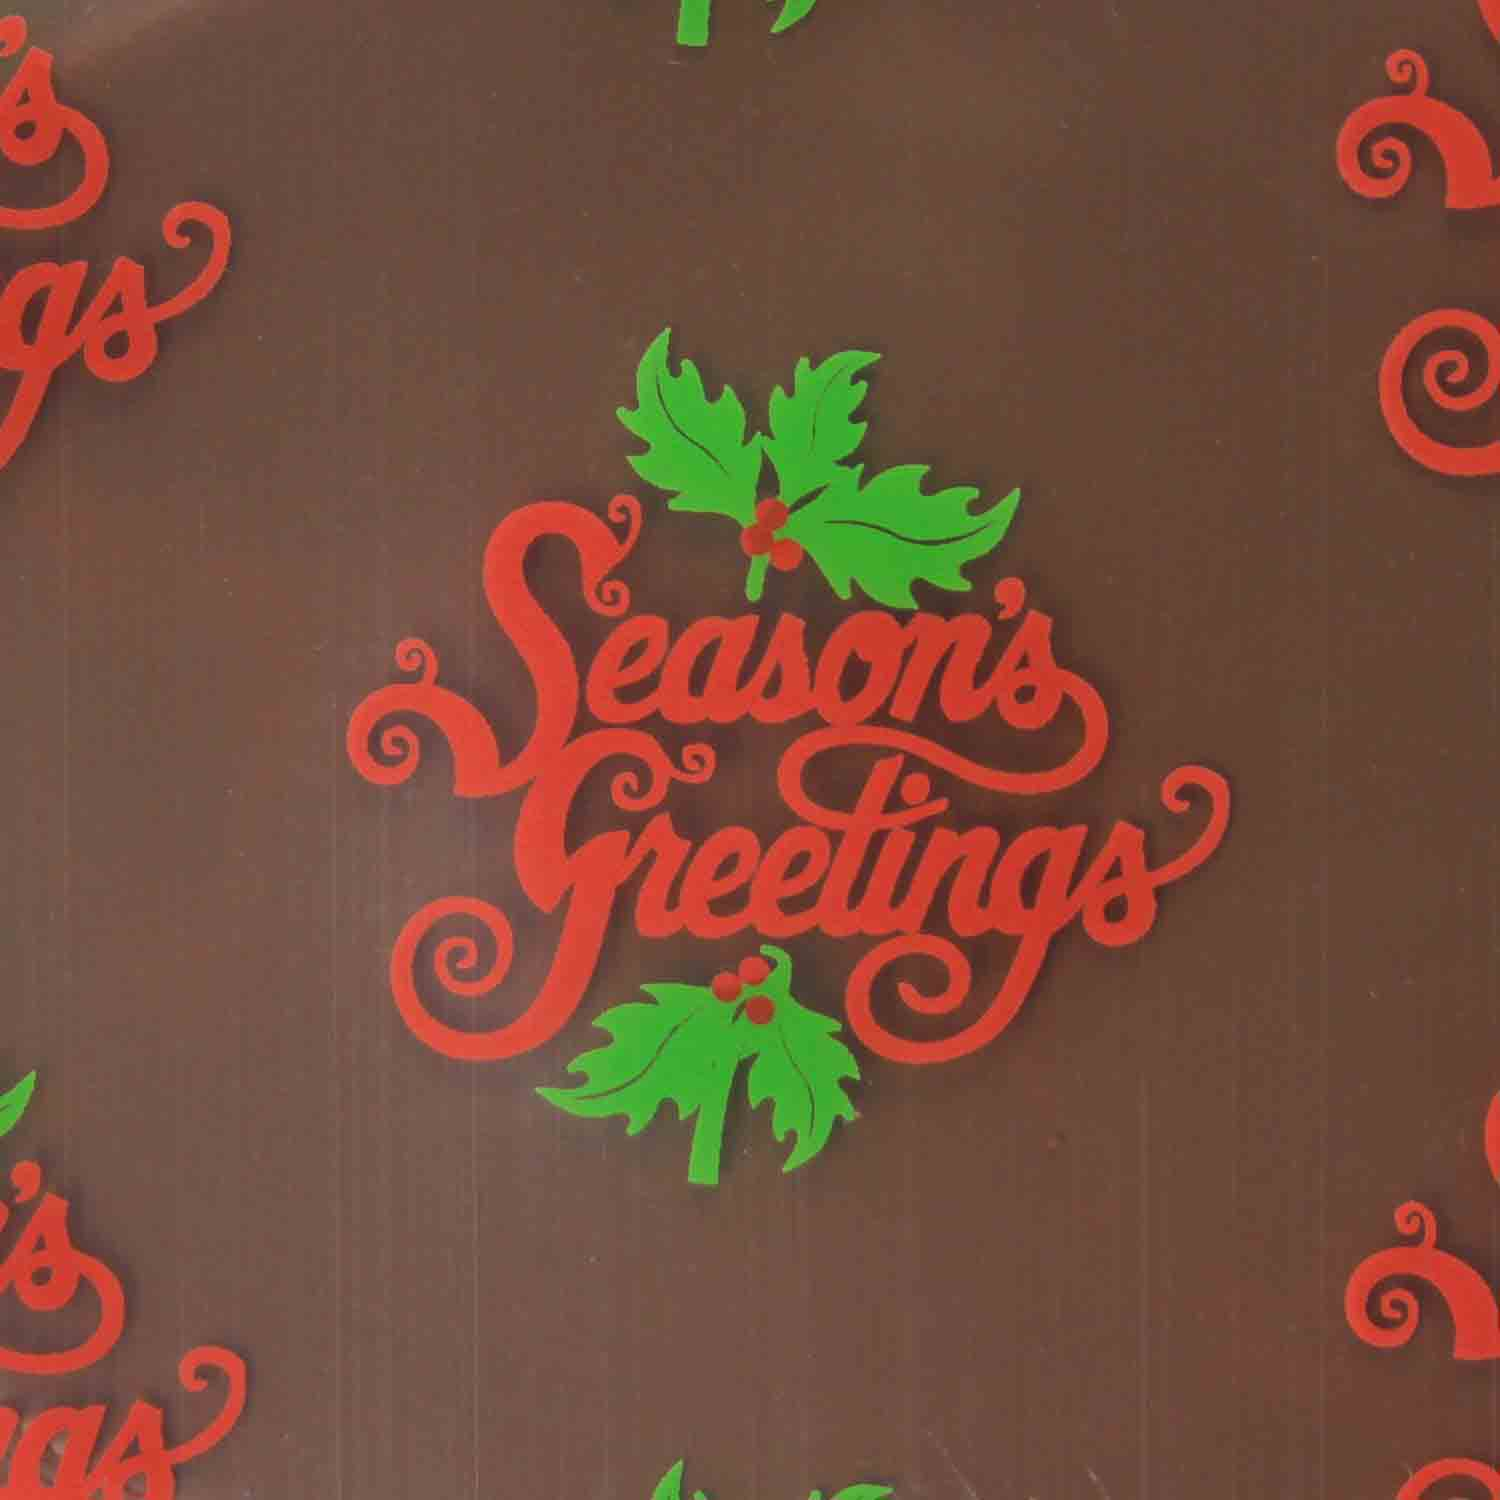 Chocolate Transfer Sheet - Season's Greetings